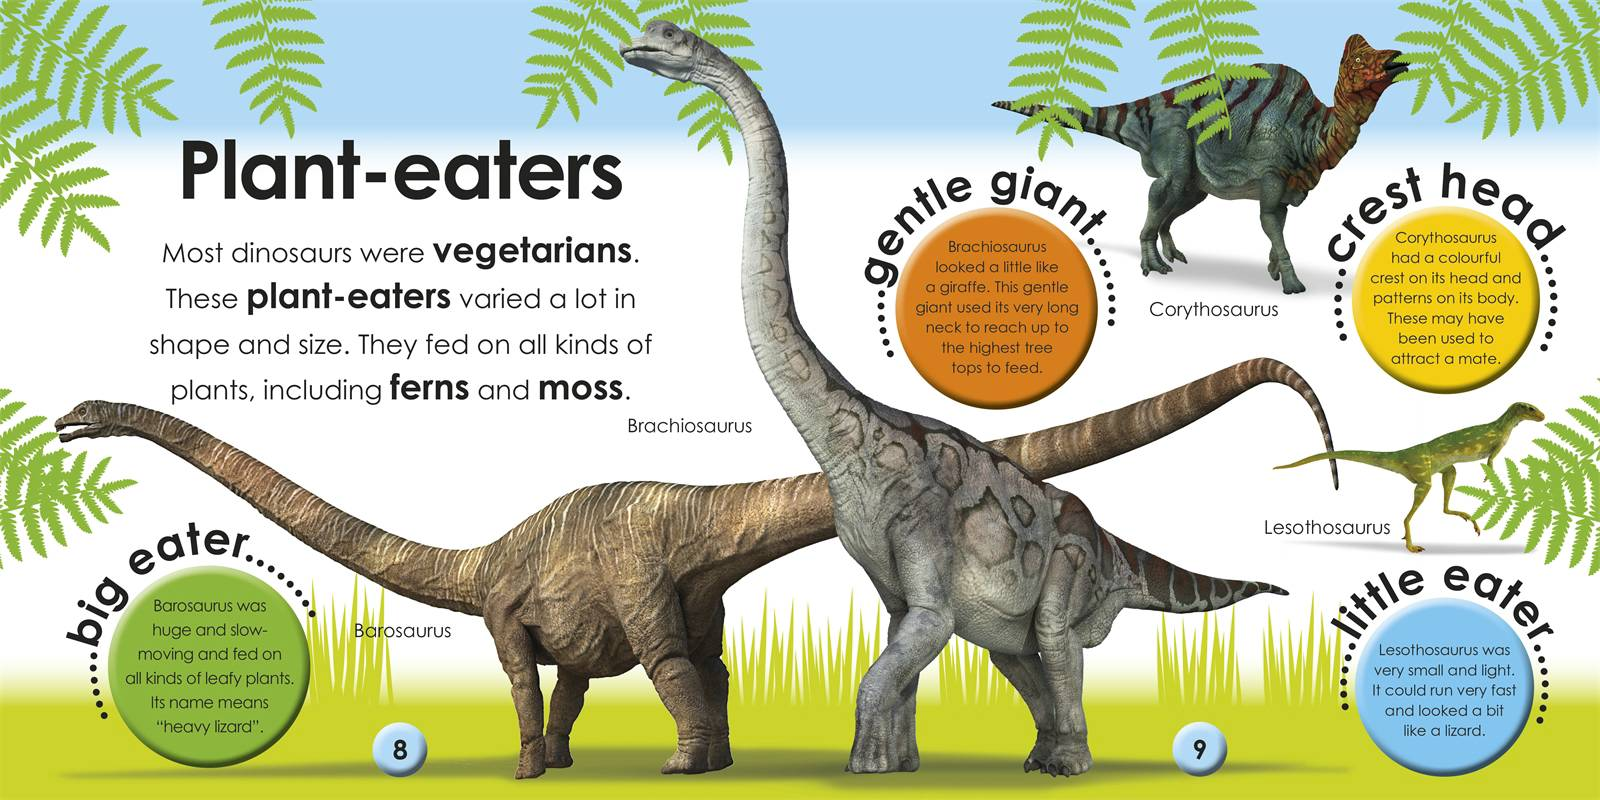 Plant eating dinosaurs names pictures Dinosaurs - Pictures and Facts